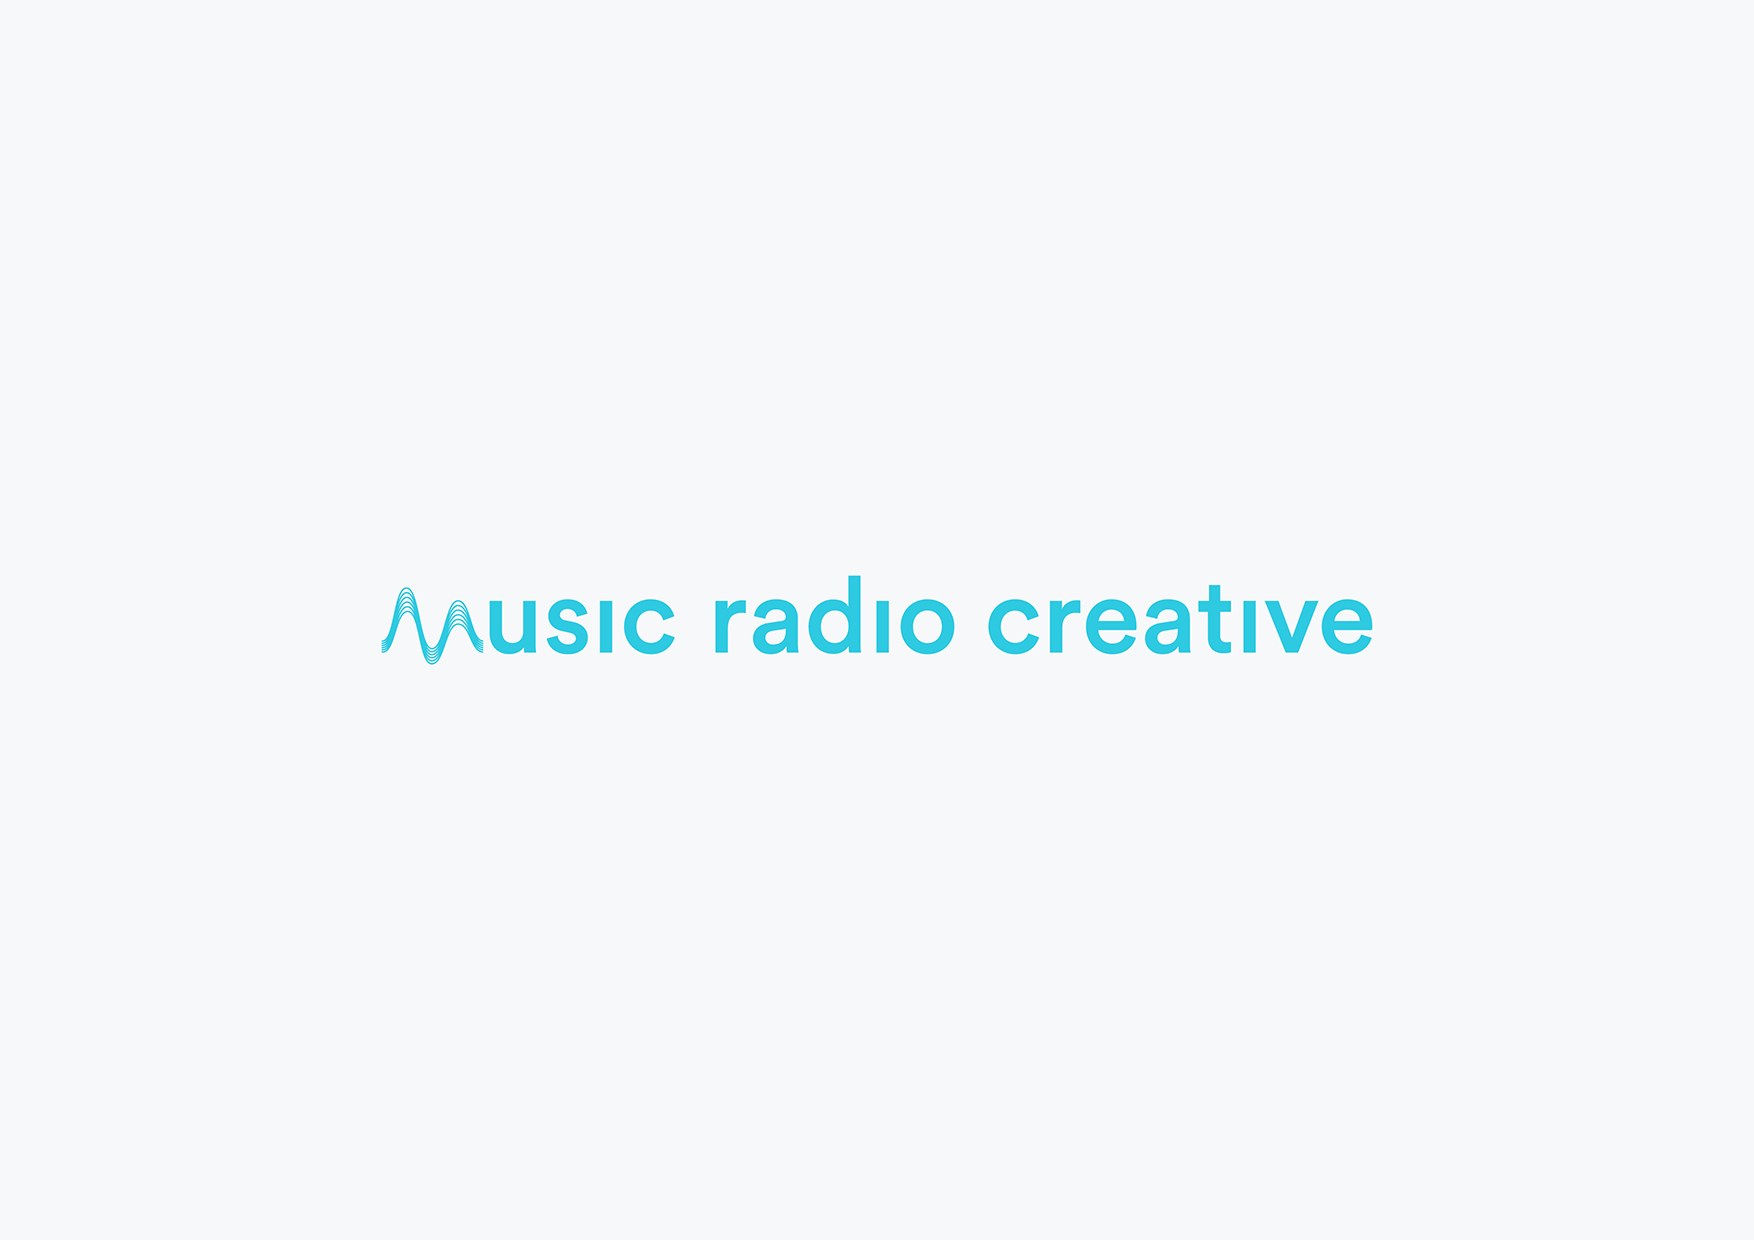 music-radio-creative-brand-02.png